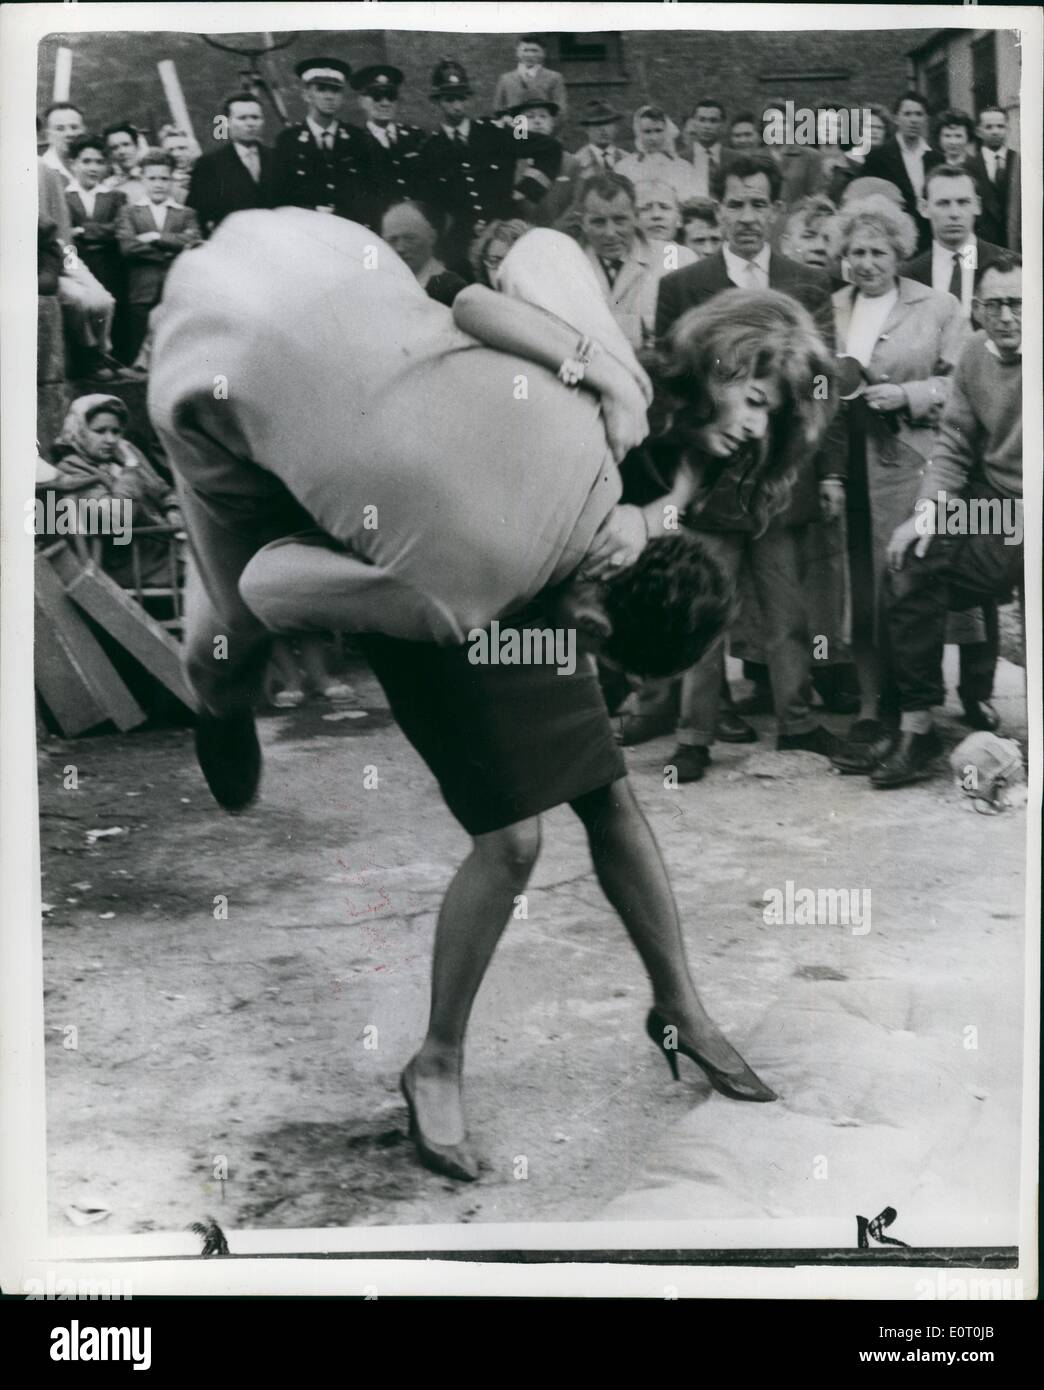 Jun. 06, 1960 - Sophia Loren And Peter Sellers Film Location Shots For ''The Millionairess''.. Italian film star Sophia Loren British comedian Peter Sellers and Dennis Price were to be seen making location shots for their new film ''The Millionaires '' in Upper Thames Street, London yesterday. Photo shows Sophia Loren performs a Judo throw on Ray Austin (stand -in for Denis Price) during filming in London. - Stock Image